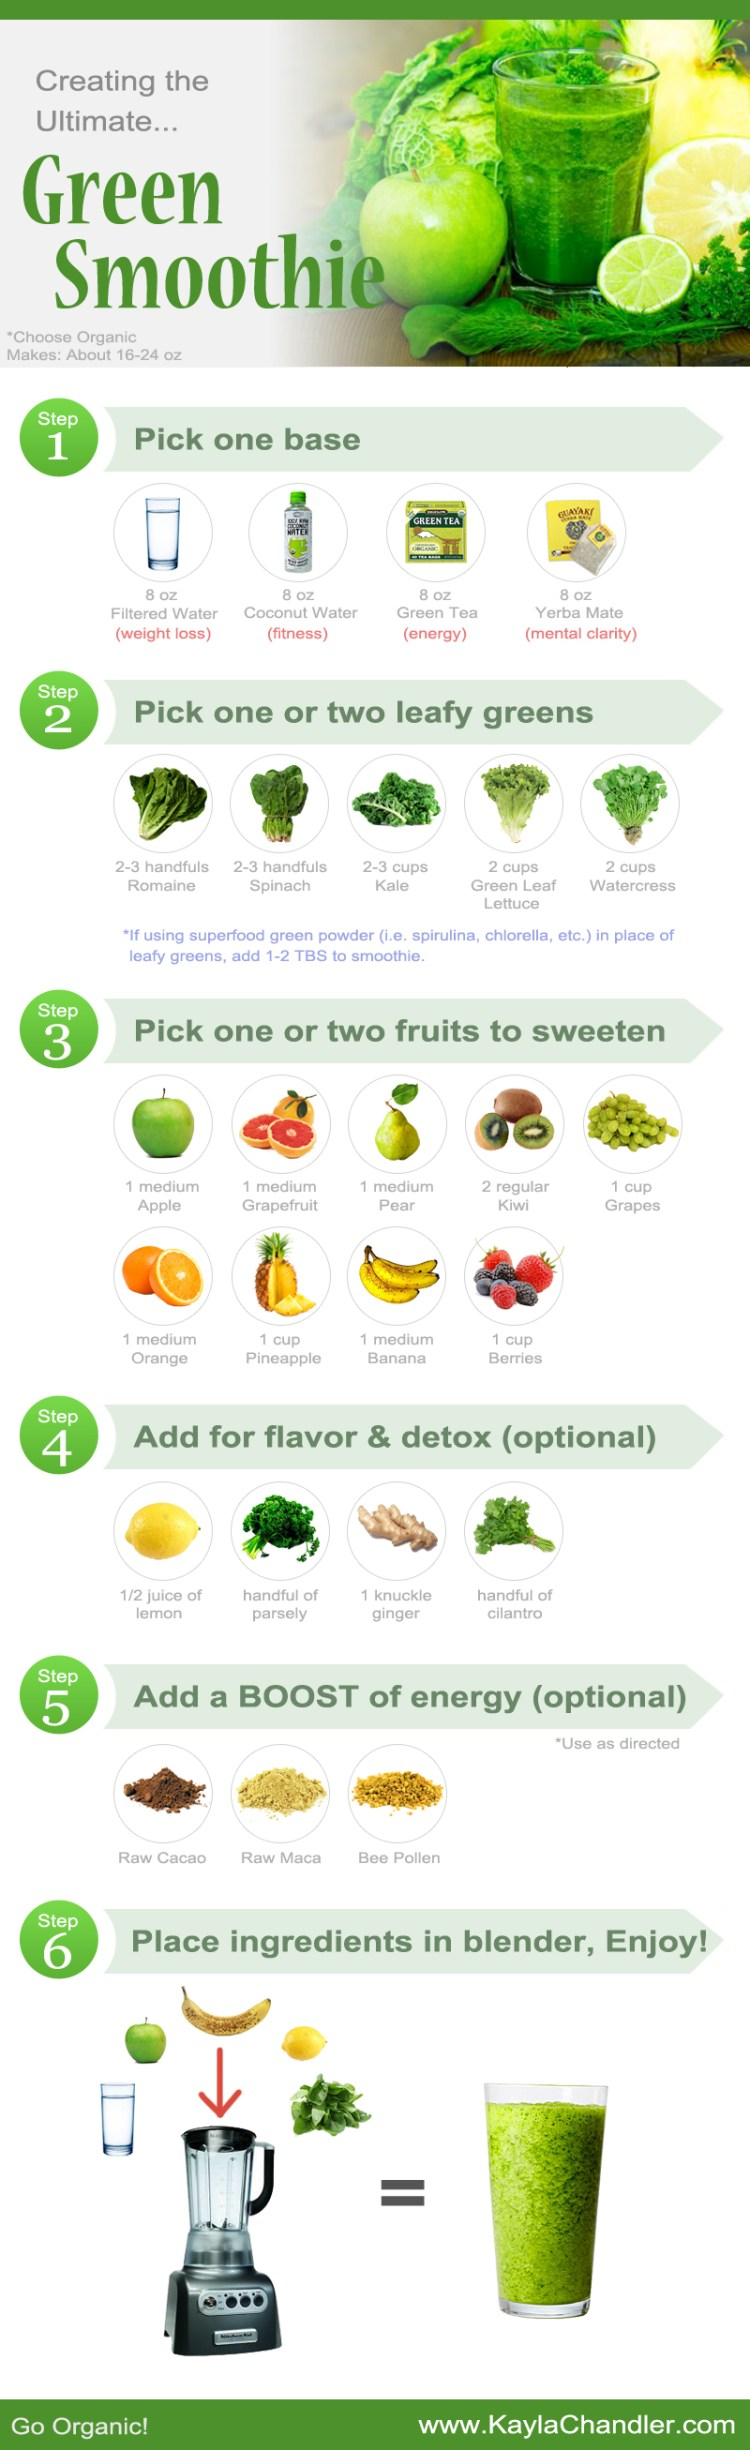 Guide_to_GreenSmoothie